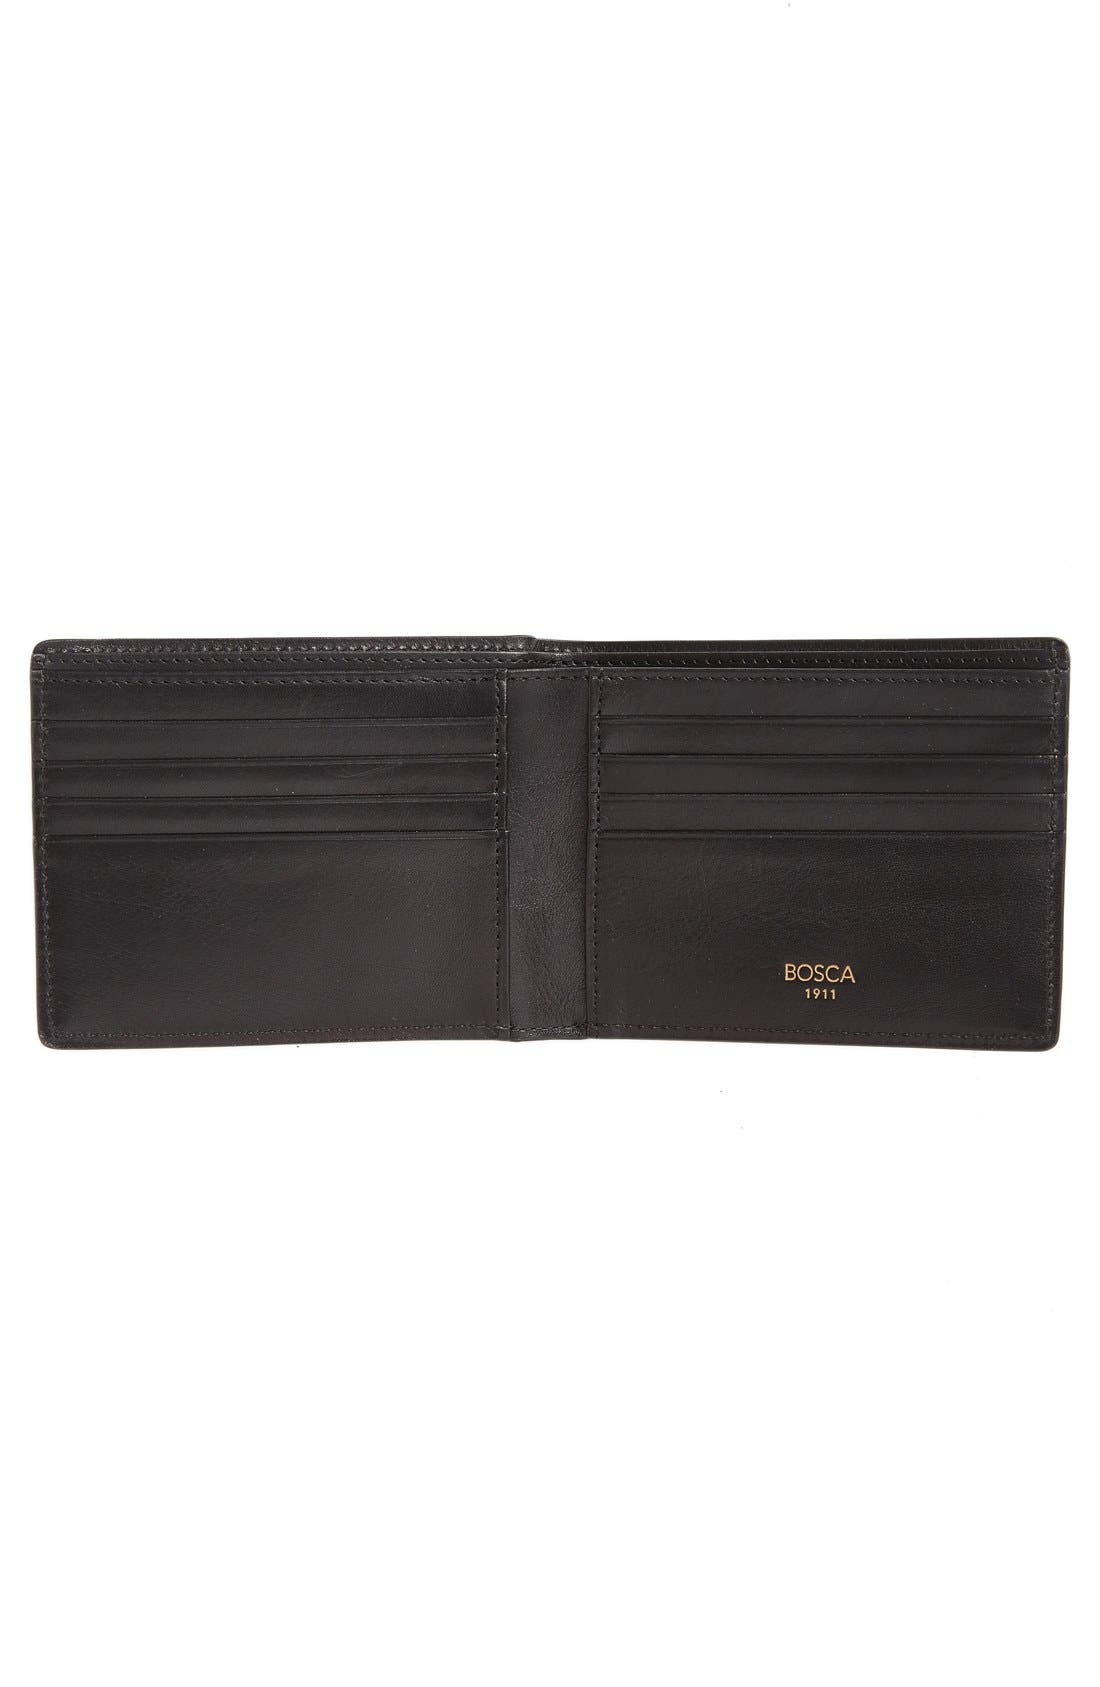 Leather Bifold Wallet,                             Alternate thumbnail 2, color,                             001